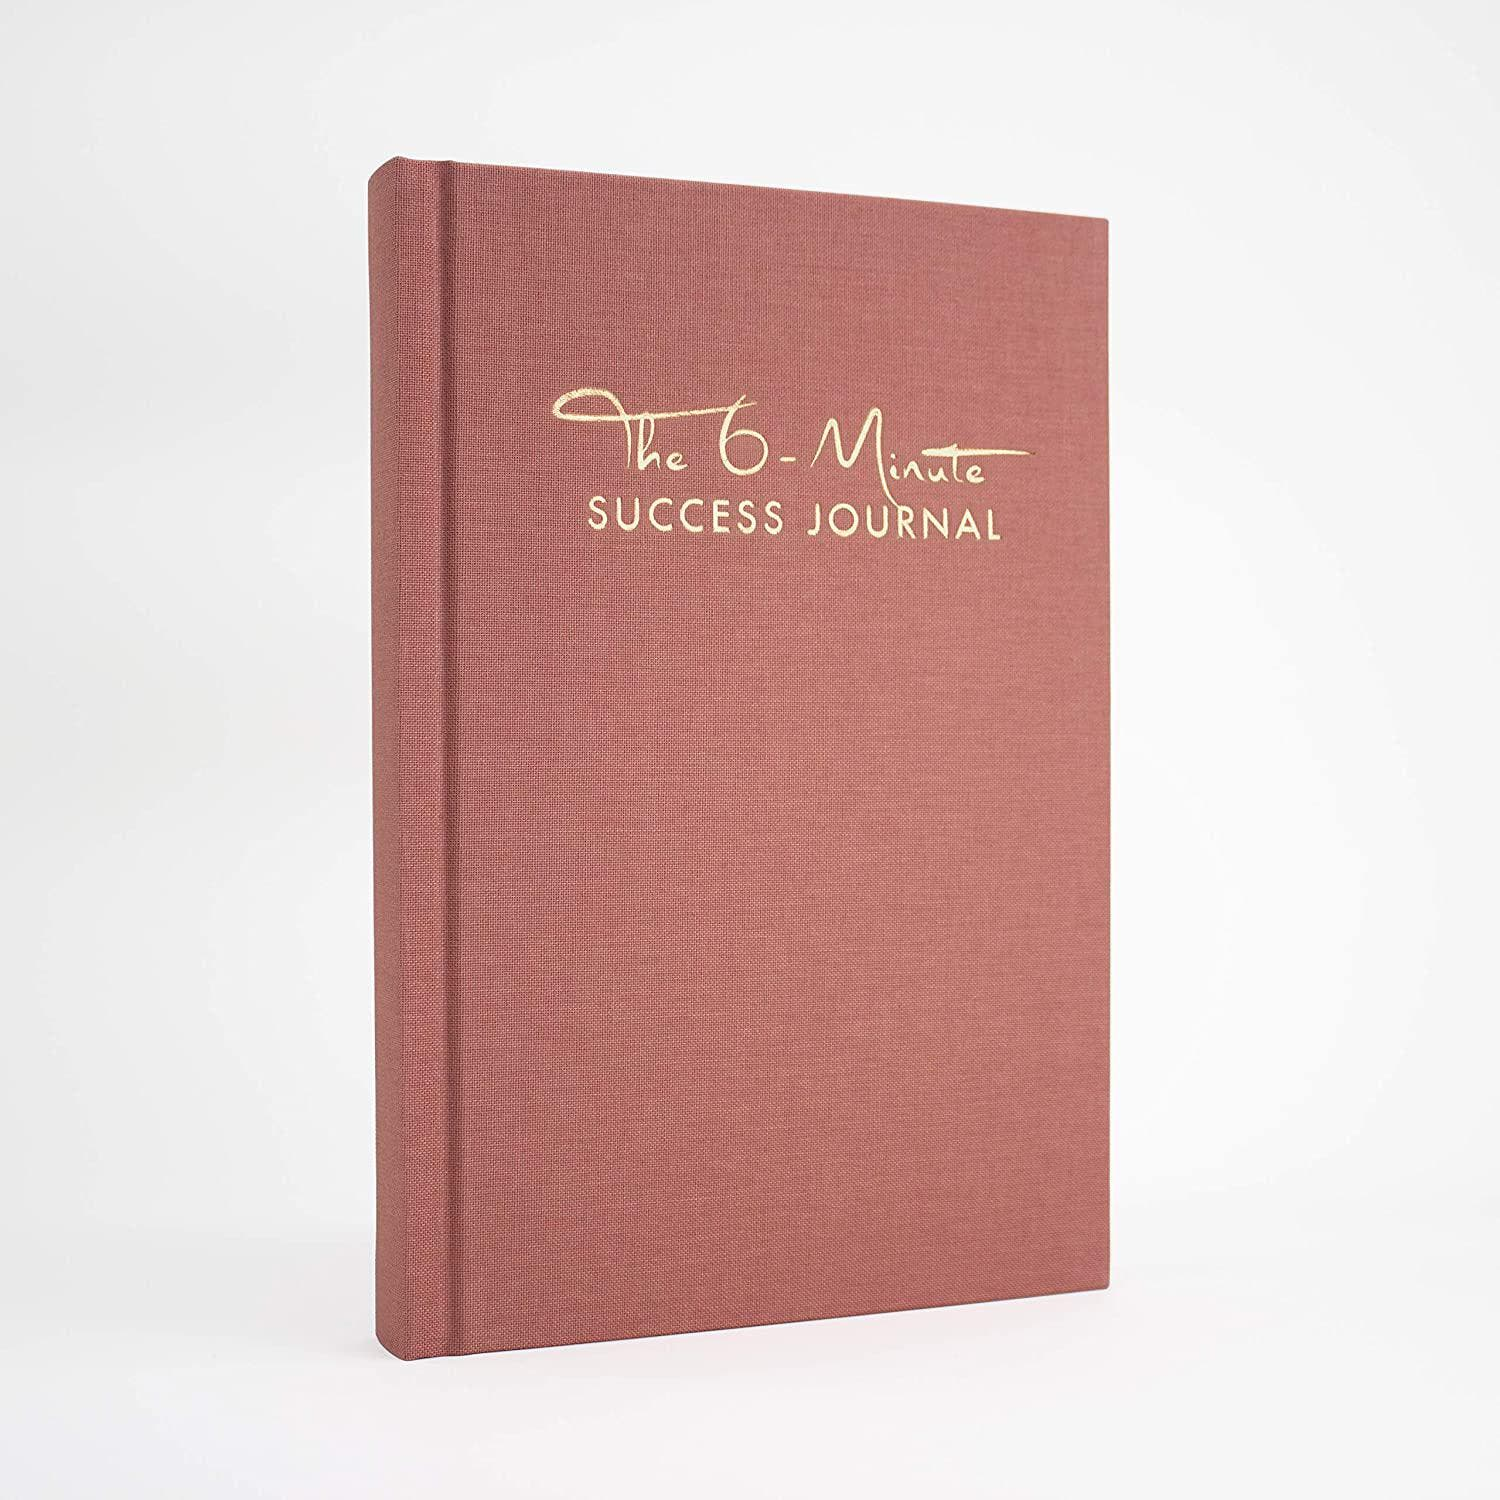 """The 6-Minute Success Journal   Reach Goals with More Focus and Calm   6 Minutes Daily for More Motivation, Success and Mindfulness   The Day Planner from The Makers of """"The 6-Minute Diary"""" Brand: UrBestSelfColor: Antique PinkFeatures:  ✅ BE PRODUCTIVE WITHOUT PRODUCING EXHAUSTION – By blending practice-proven mindfulness exercises with productivity boosting strategies, The 6 Minute-Success Journal stands out as a unique tool: it helps you pursue your big goals not only more consistently, but also more calmly. ✅ ACHIEVE GOALS THAT FULFILL YOUR LIFE – instead of just filling your schedule: By reflecting your innermost needs & values, you set meaningful goals. Live your own definition of personal and professional success! ✅ DO MORE WITH LESS – The concept is based on scientific findings and practice-proven techniques. This journal helps you to apply the proven 6-Minute Principle and to pursue your goals consistently and on a long-term basis – step by step, habit by habit. ✅ FOCUS ON WHAT'S IMPORTANT – The daily planner helps you to single out tasks that, upon completion, will maximise your benefit. By using this cleverly designed tool, you avoid falling prey to distractions and pursue your goals and visions instead. Say """"No"""" to chaos & hecticness and """"Yes"""" to more calm and clarity. ✅ HIGH QUALITY ON THE INSIDE AND OUTSIDE – Finest French linen, CO2-neutral print, vegan materials. Printed & bound with love in Germany. The success journal for everyone too busy for a success journal. Your companion for more fulfilment, focus and success. Details: PERSONAL GROWTH through REFLECTION:  Daily reflection is one of the key principles of The 6-Minute Diary. The Evening Routine and the Weekly 5 Questions are a unique tool to help you discover yourself and to set goals that align with who you truly are. The 6-Minute Diary will help you become the person you know you can be.   Discover what REALLY MAKES YOU HAPPY:  Research shows: When remembering what made us happy, we tend to add"""